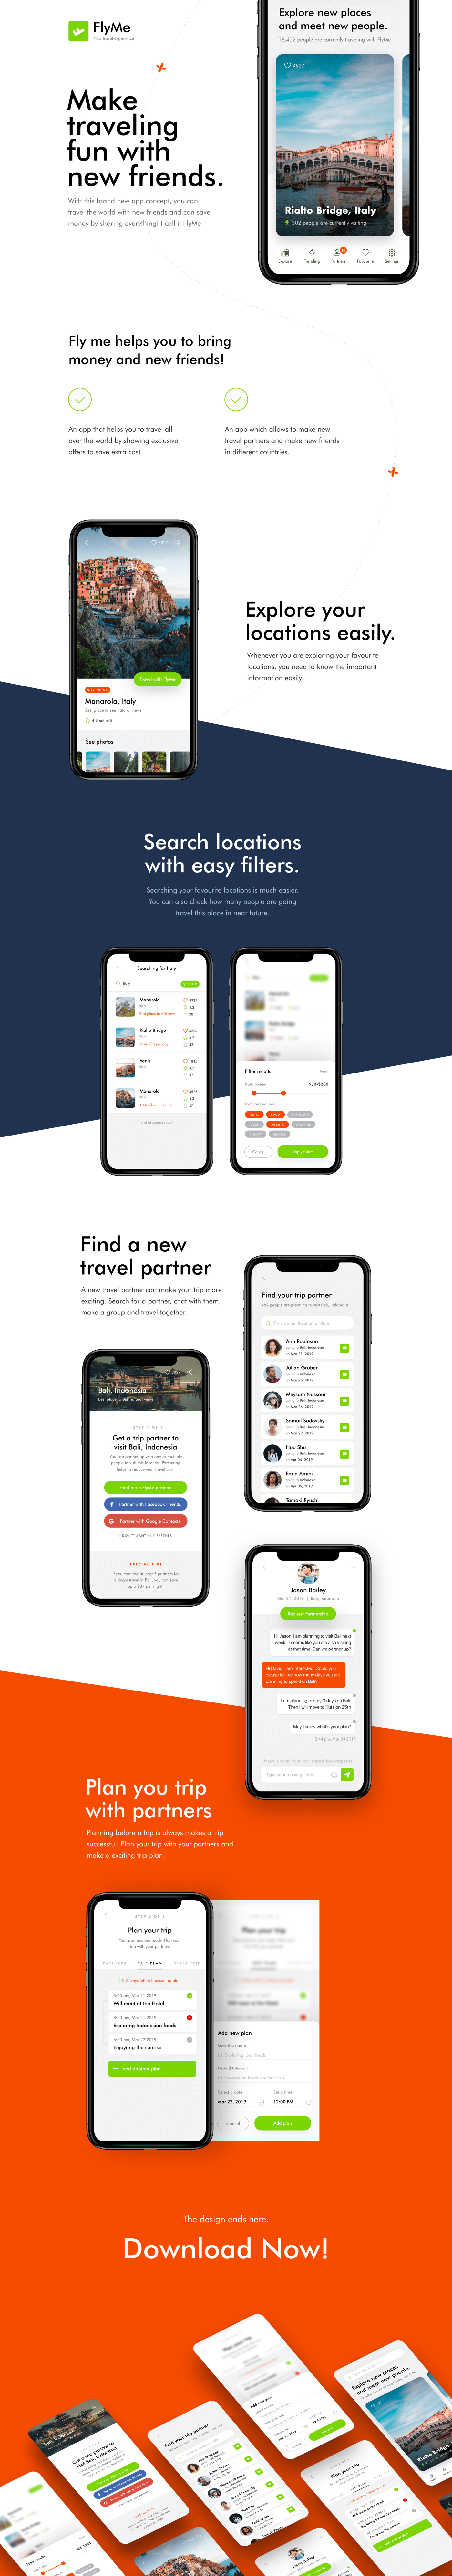 FlyMe - Free Travel App UI Kit - Minimal and clean app design by Farhan. Make traveling fun with new friends.